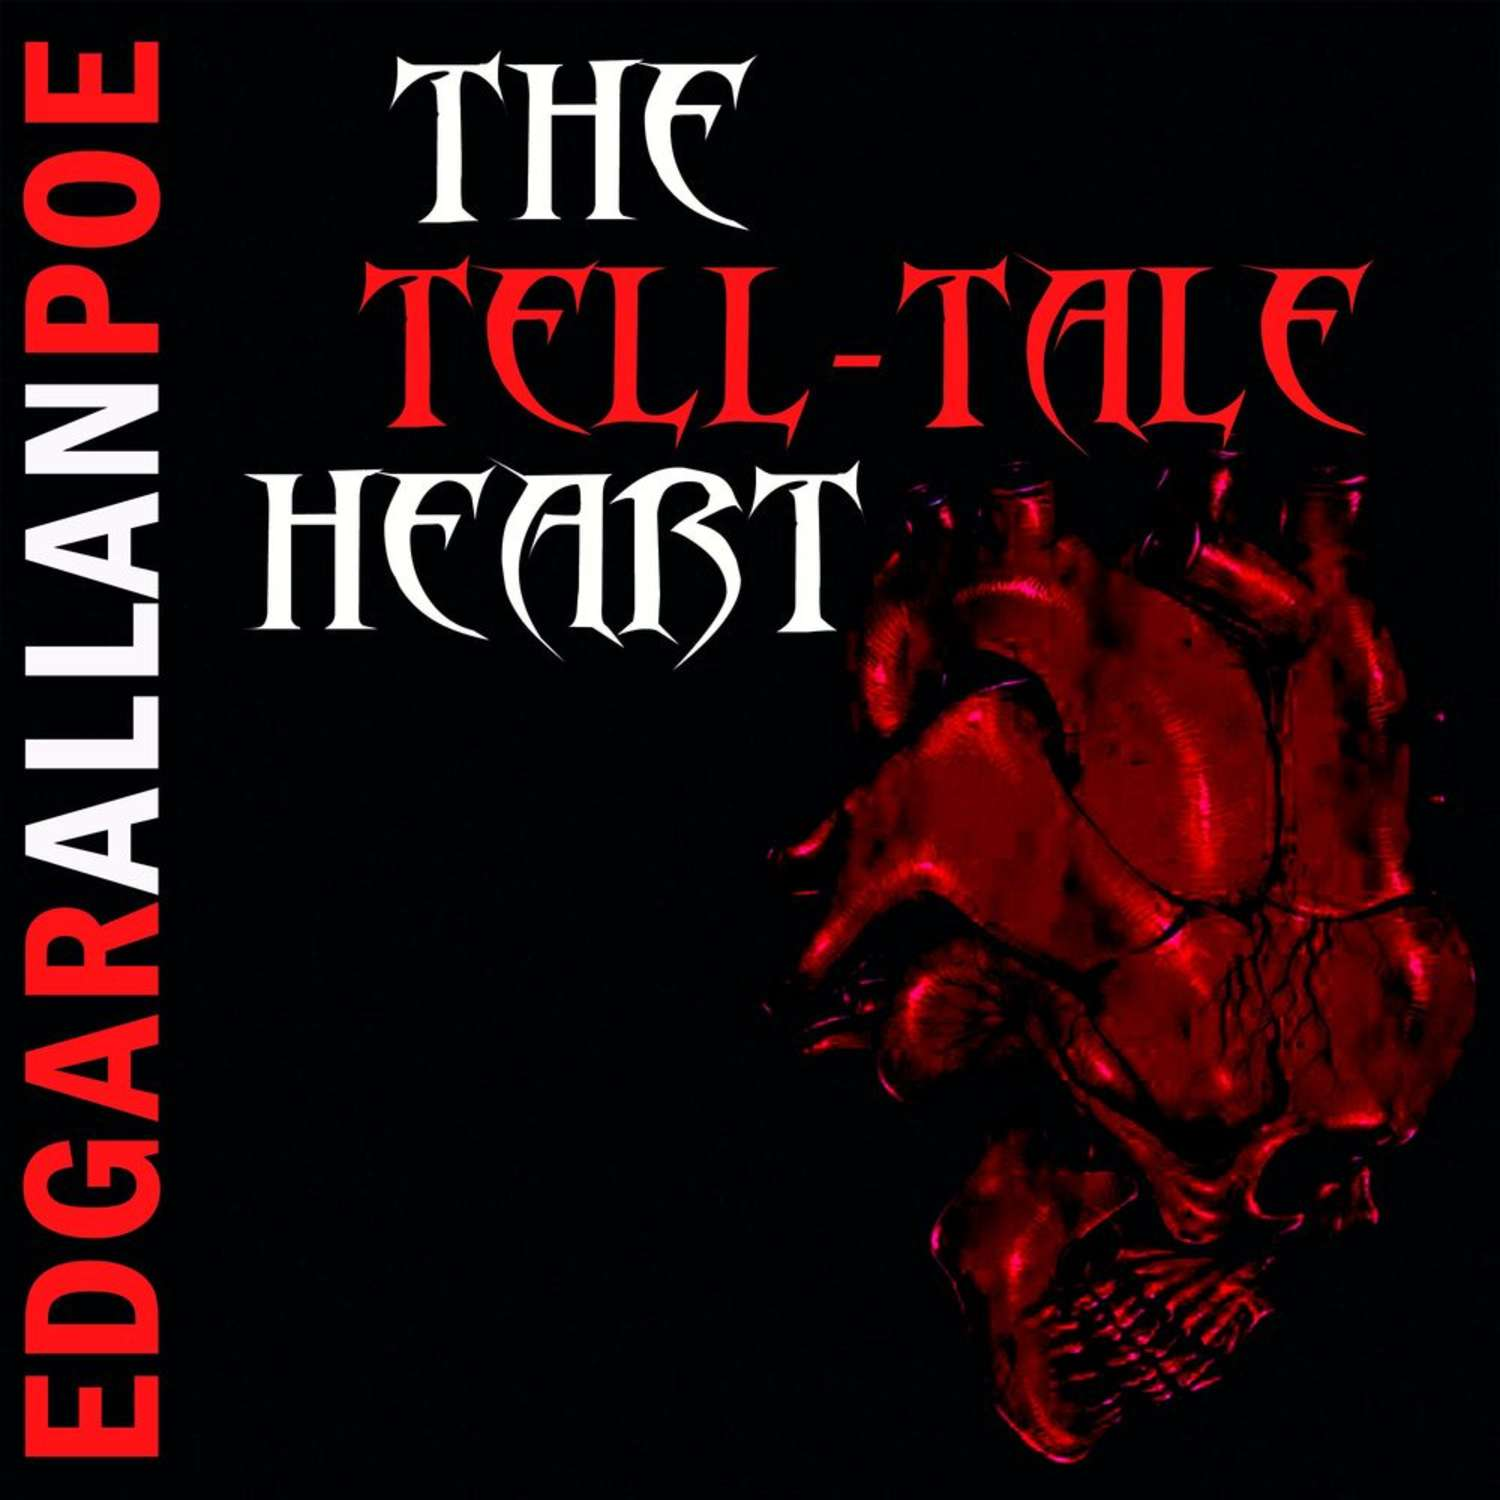 Edgar Allan Poe Audiobook The Tell Tale Heart Listen To It